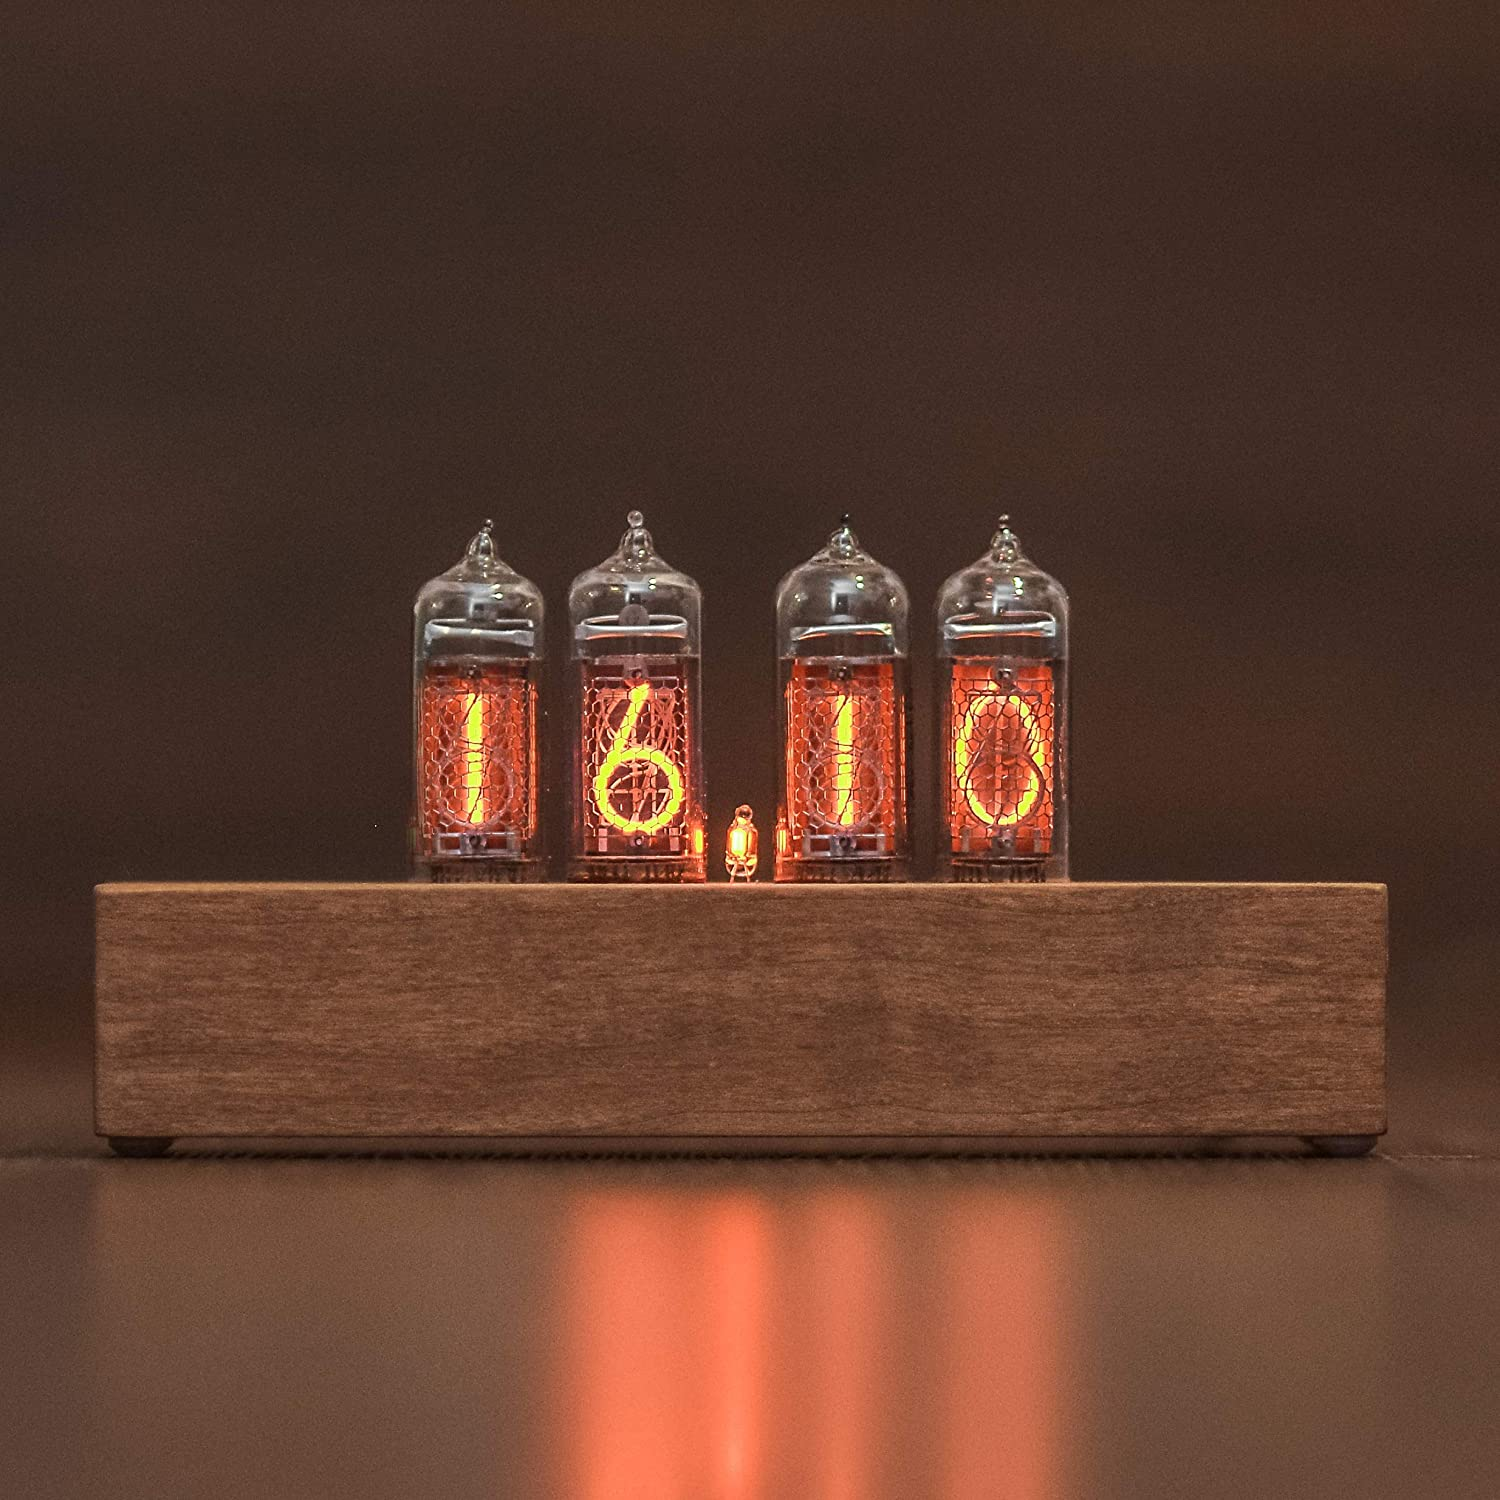 Nixie Tube Clock 4x IN-14 Nixie Clock Vintage Retro Desk Clock Fully Assembled and Tested Wooden Alder Case Gift for Him Christmas Holiday